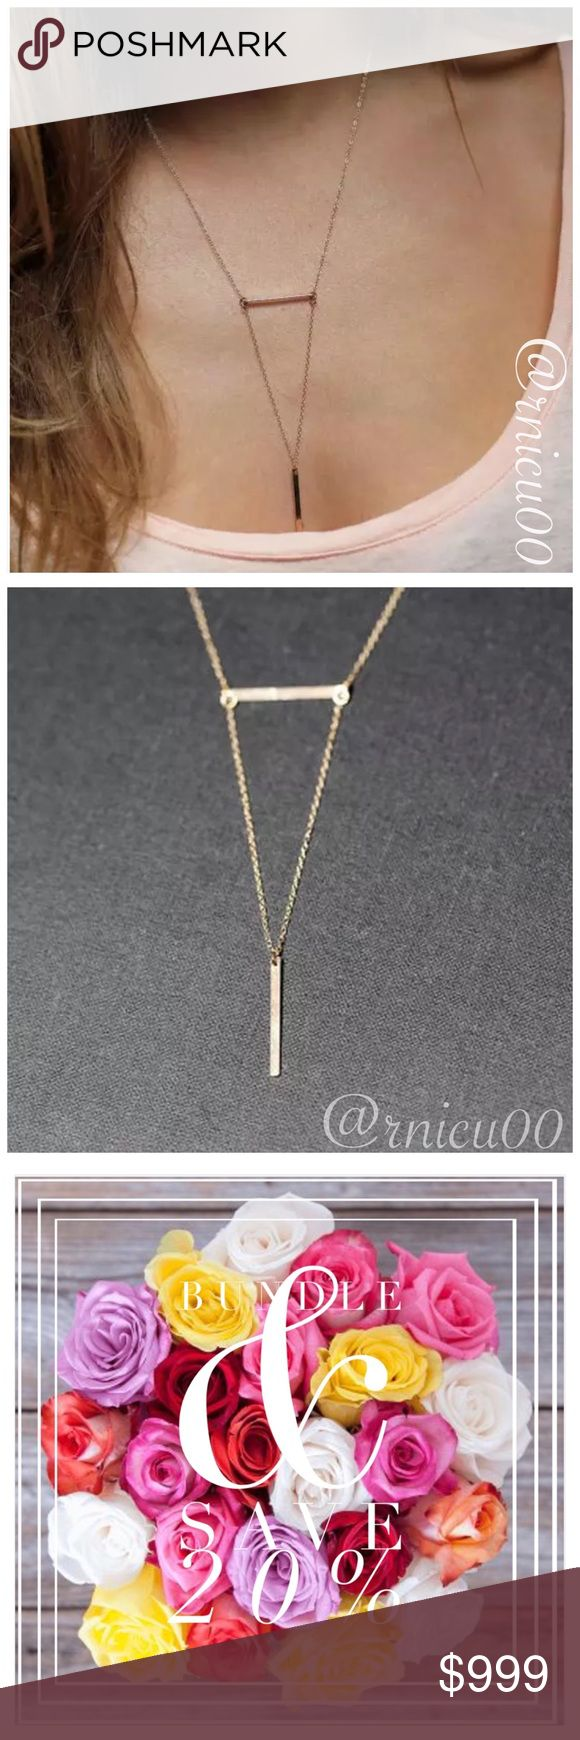 """🆕Arrival! Boho Pendant Minimalist Necklace! HOT 2017 Trend- Multi-Layered Minimalist, Boho, Sexy Style Necklace!   ✨Gold Plated ✨Lobster Clasp Closure, 2"""" Extender   *NO TRADES *Prices are FIRM-Listed at Lowest Price Unless BUNDLED! *Sales are Final-Please Read Descriptions! Boutique Jewelry Necklaces"""